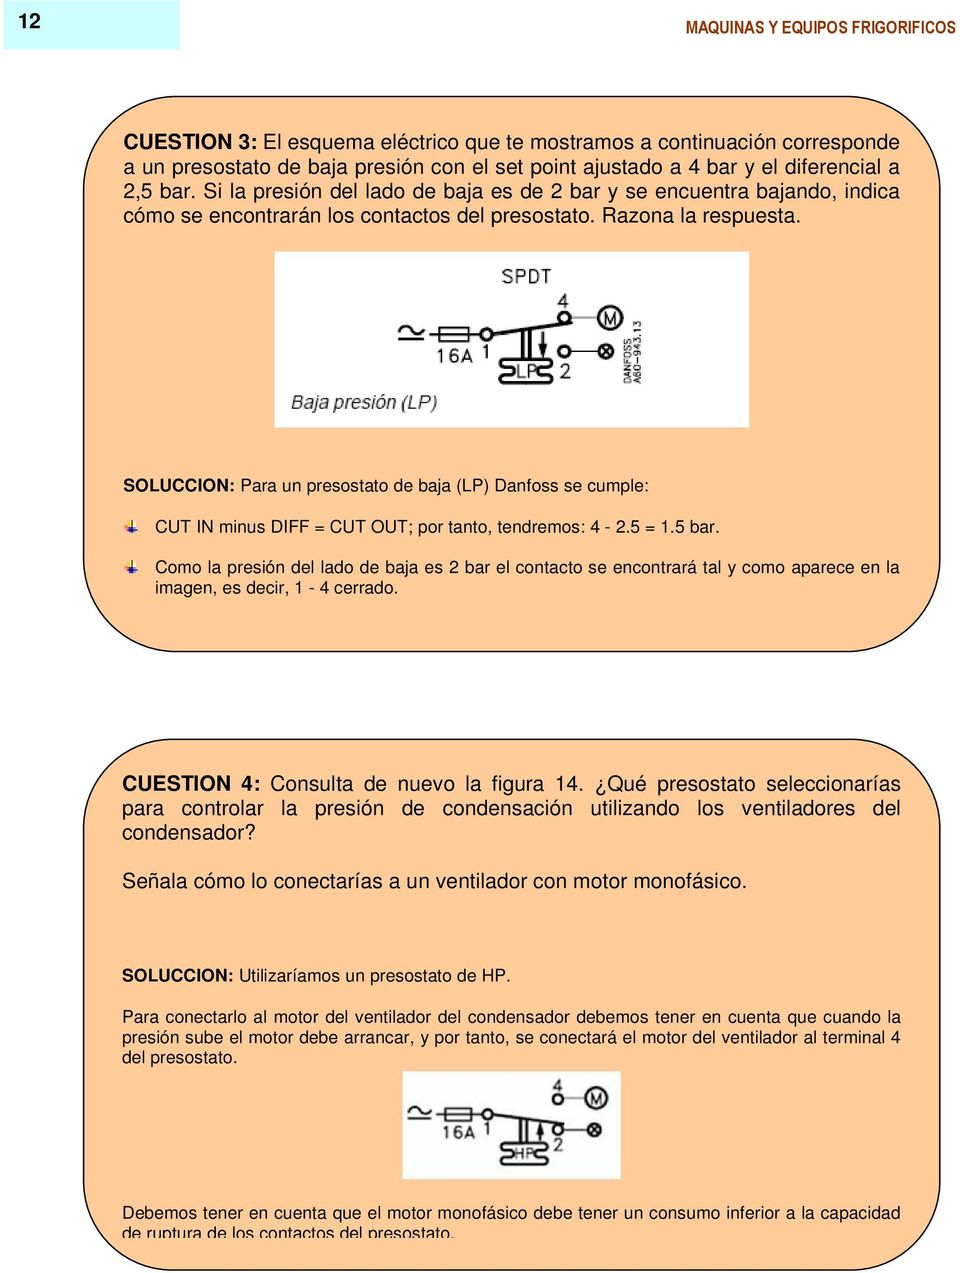 SOLUCCION: Para un presostato de baja (LP) Danfoss se cumple: CUT IN minus DIFF = CUT OUT; por tanto, tendremos: 4-2.5 = 1.5 bar.